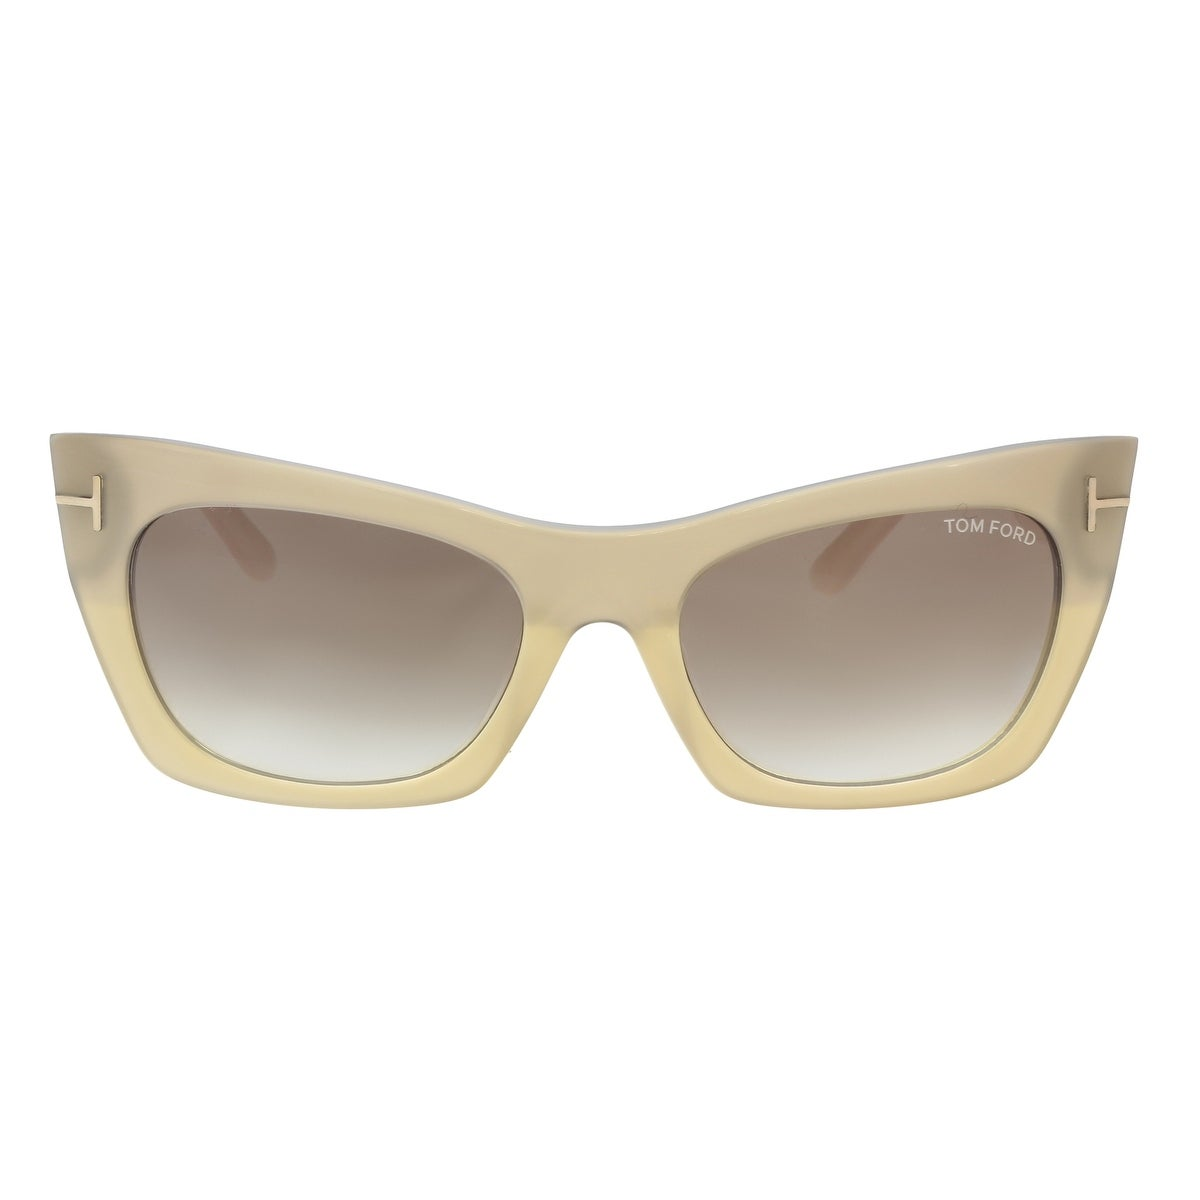 615e4efb8ddf Shop Tom Ford FT0459 S 38F Kasia Beige Cream Cat Eye Sunglasses - 55-19-140  - Free Shipping Today - Overstock - 19474668